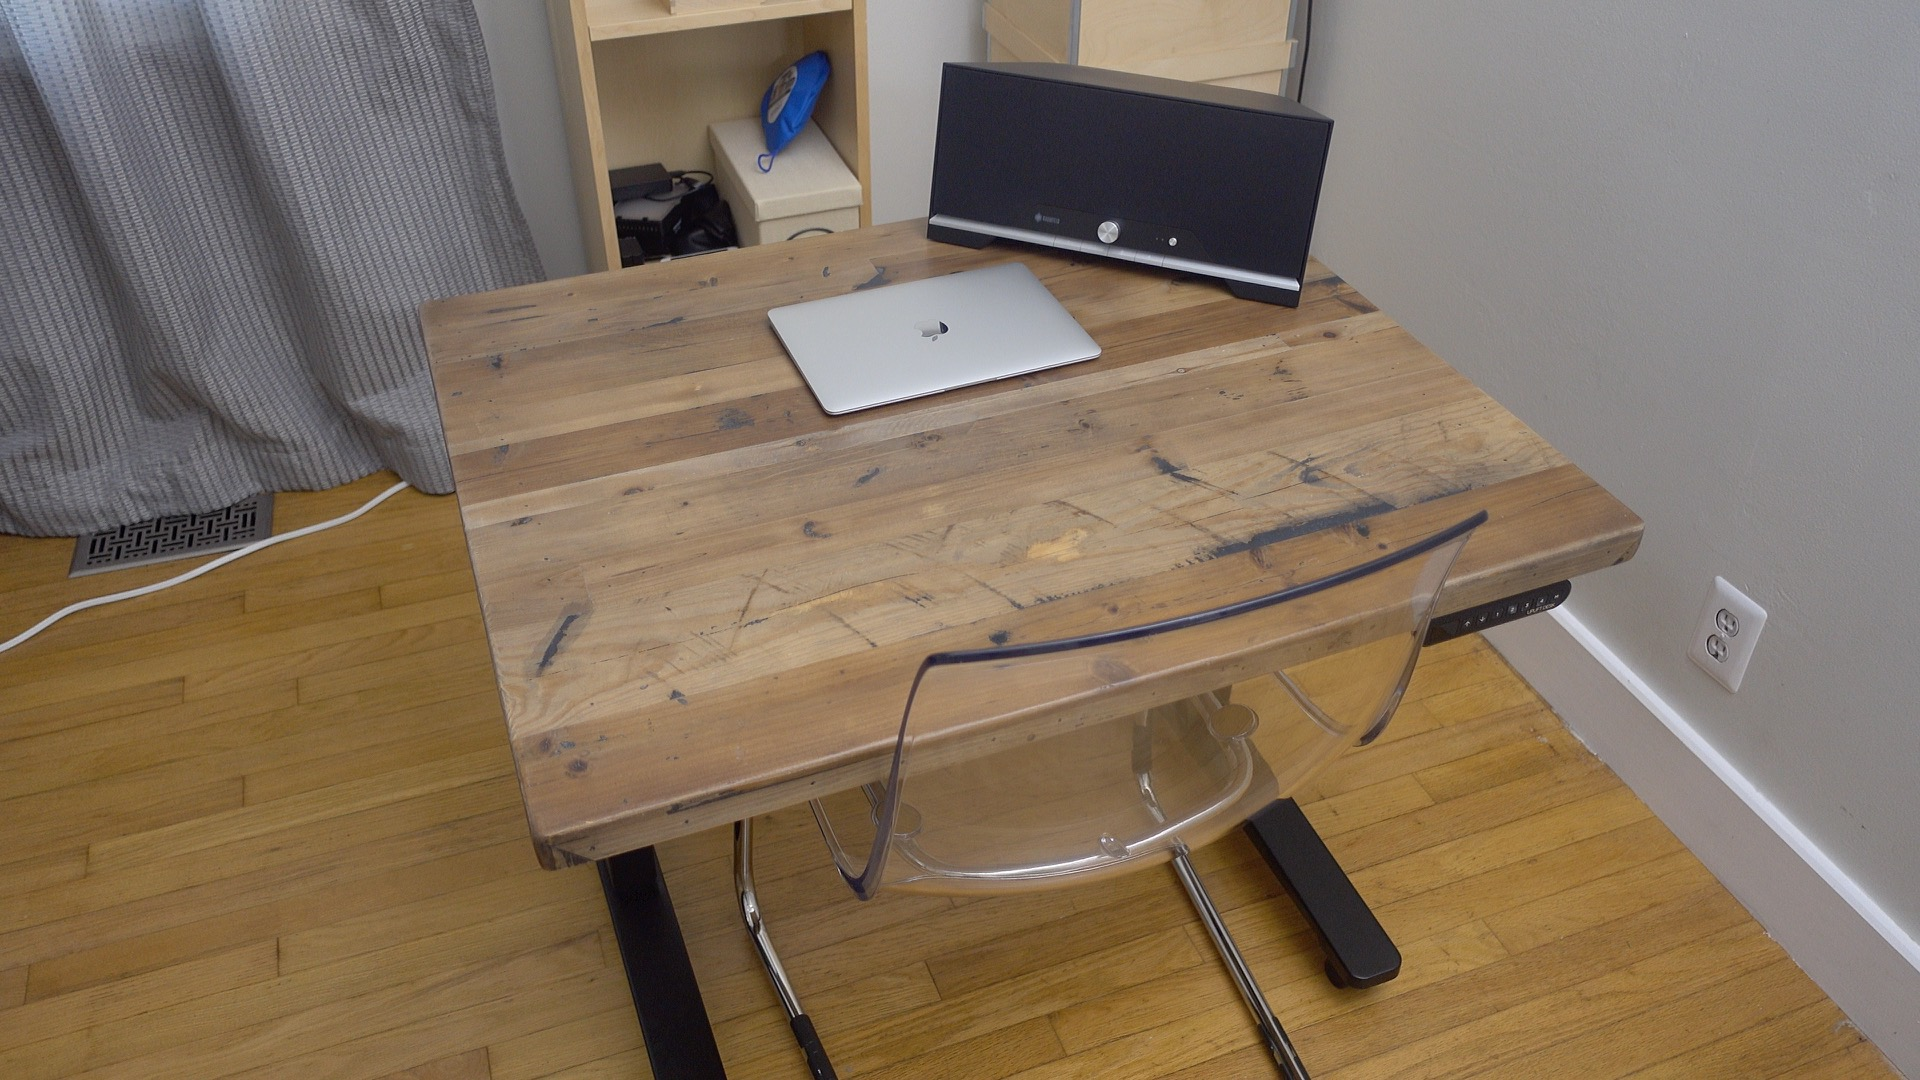 hands on uplift adjustable height standing desk features real wood